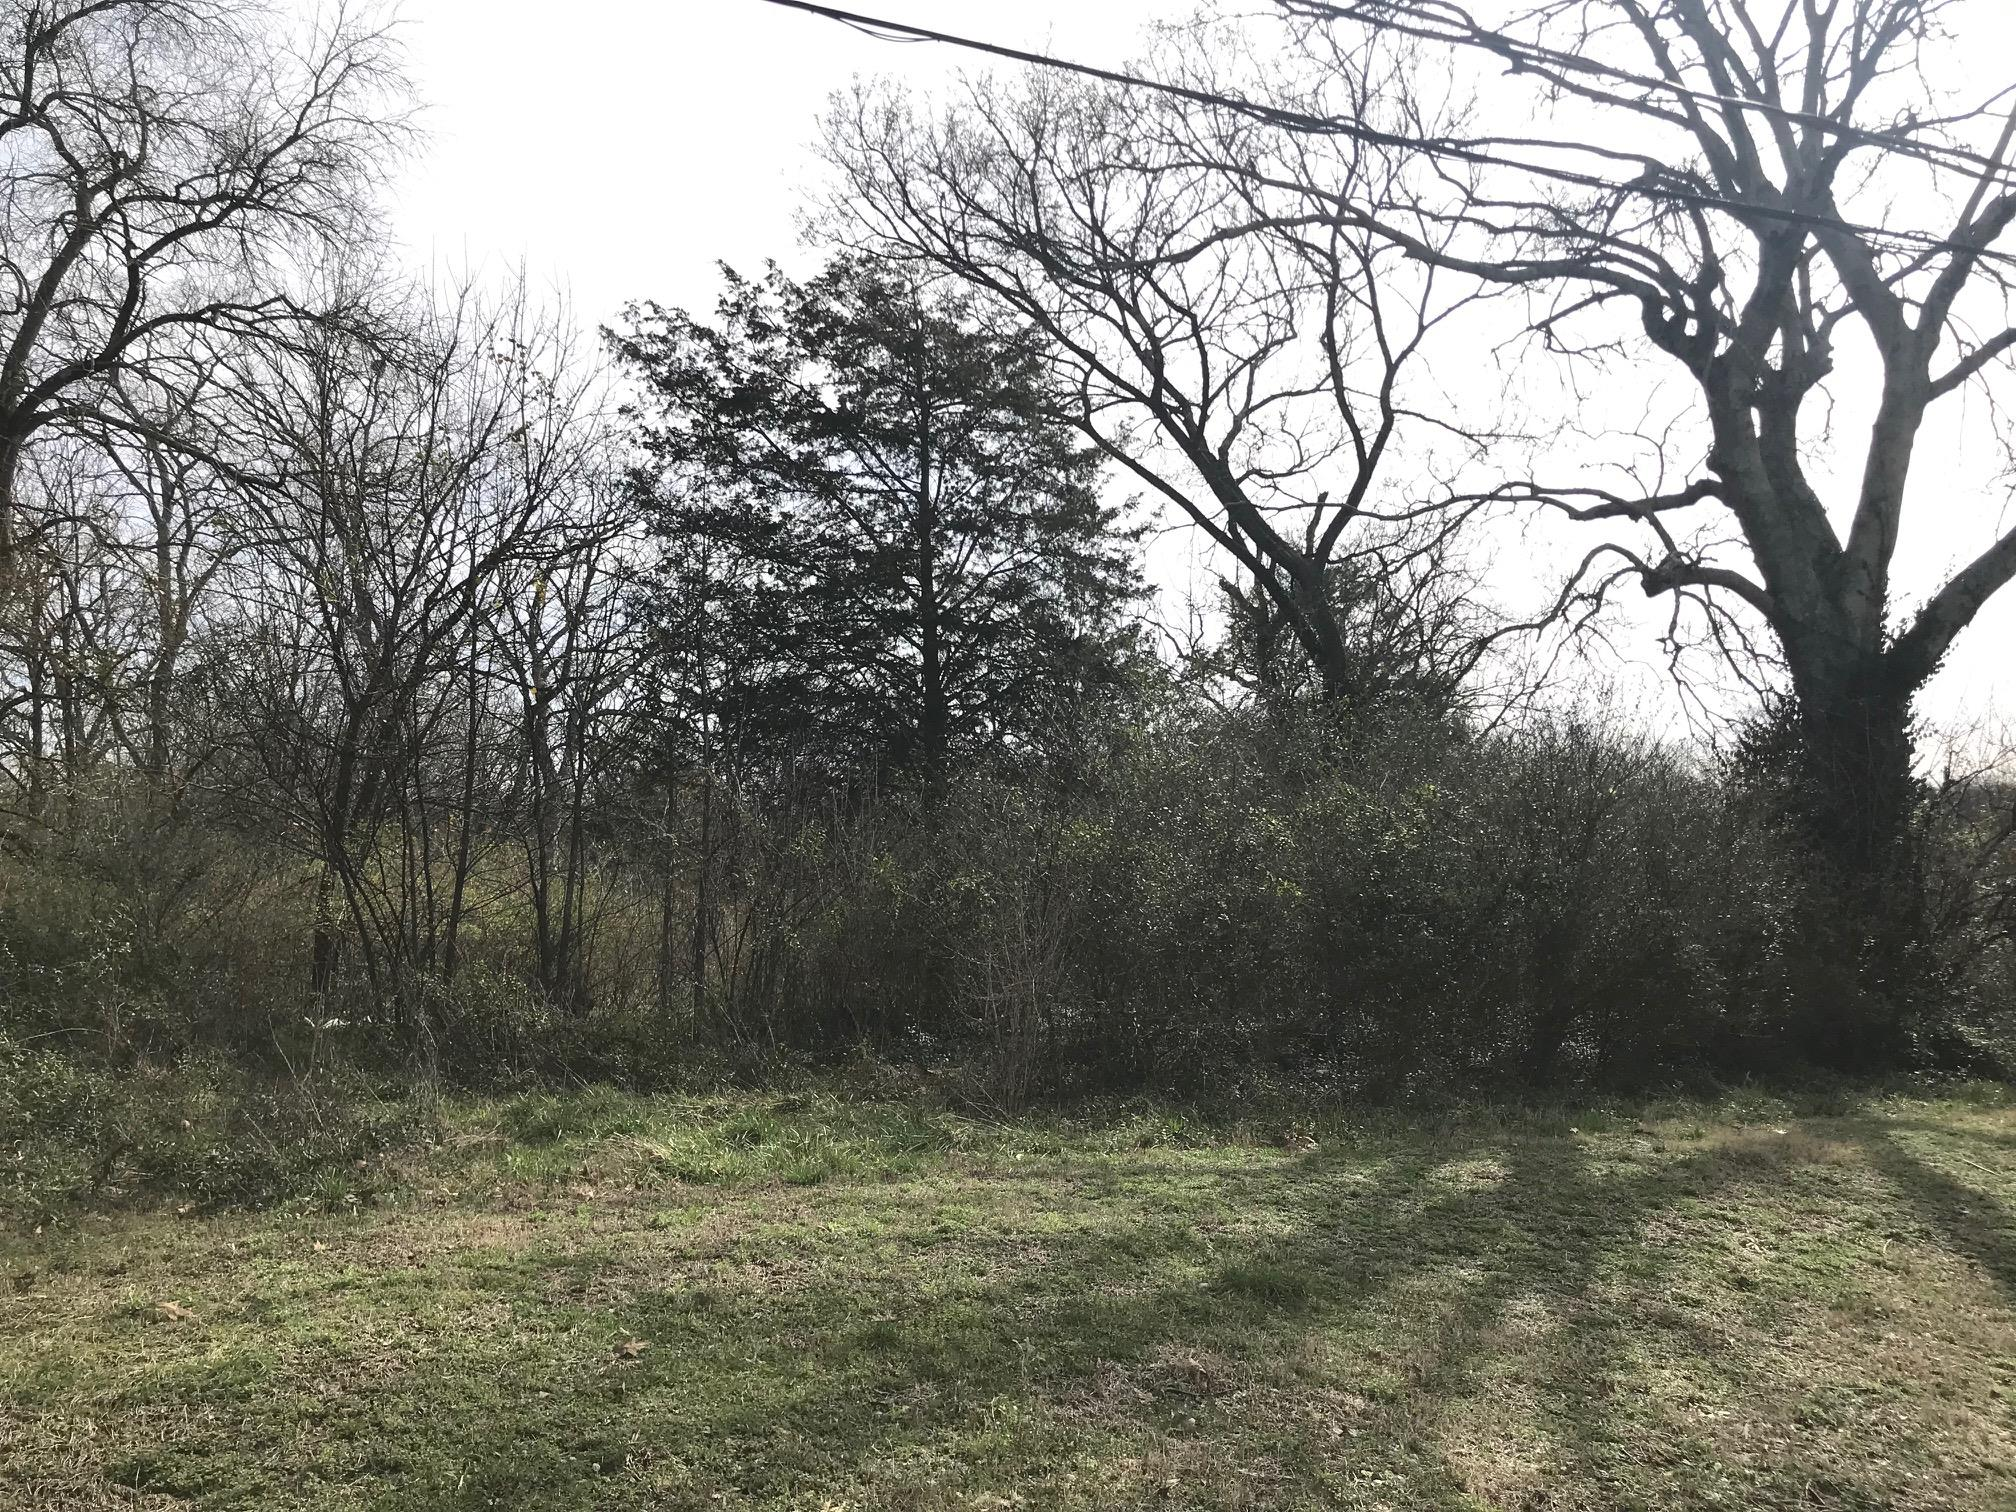 323 FOREST PARK DRIVE Property Photo - Madison, TN real estate listing